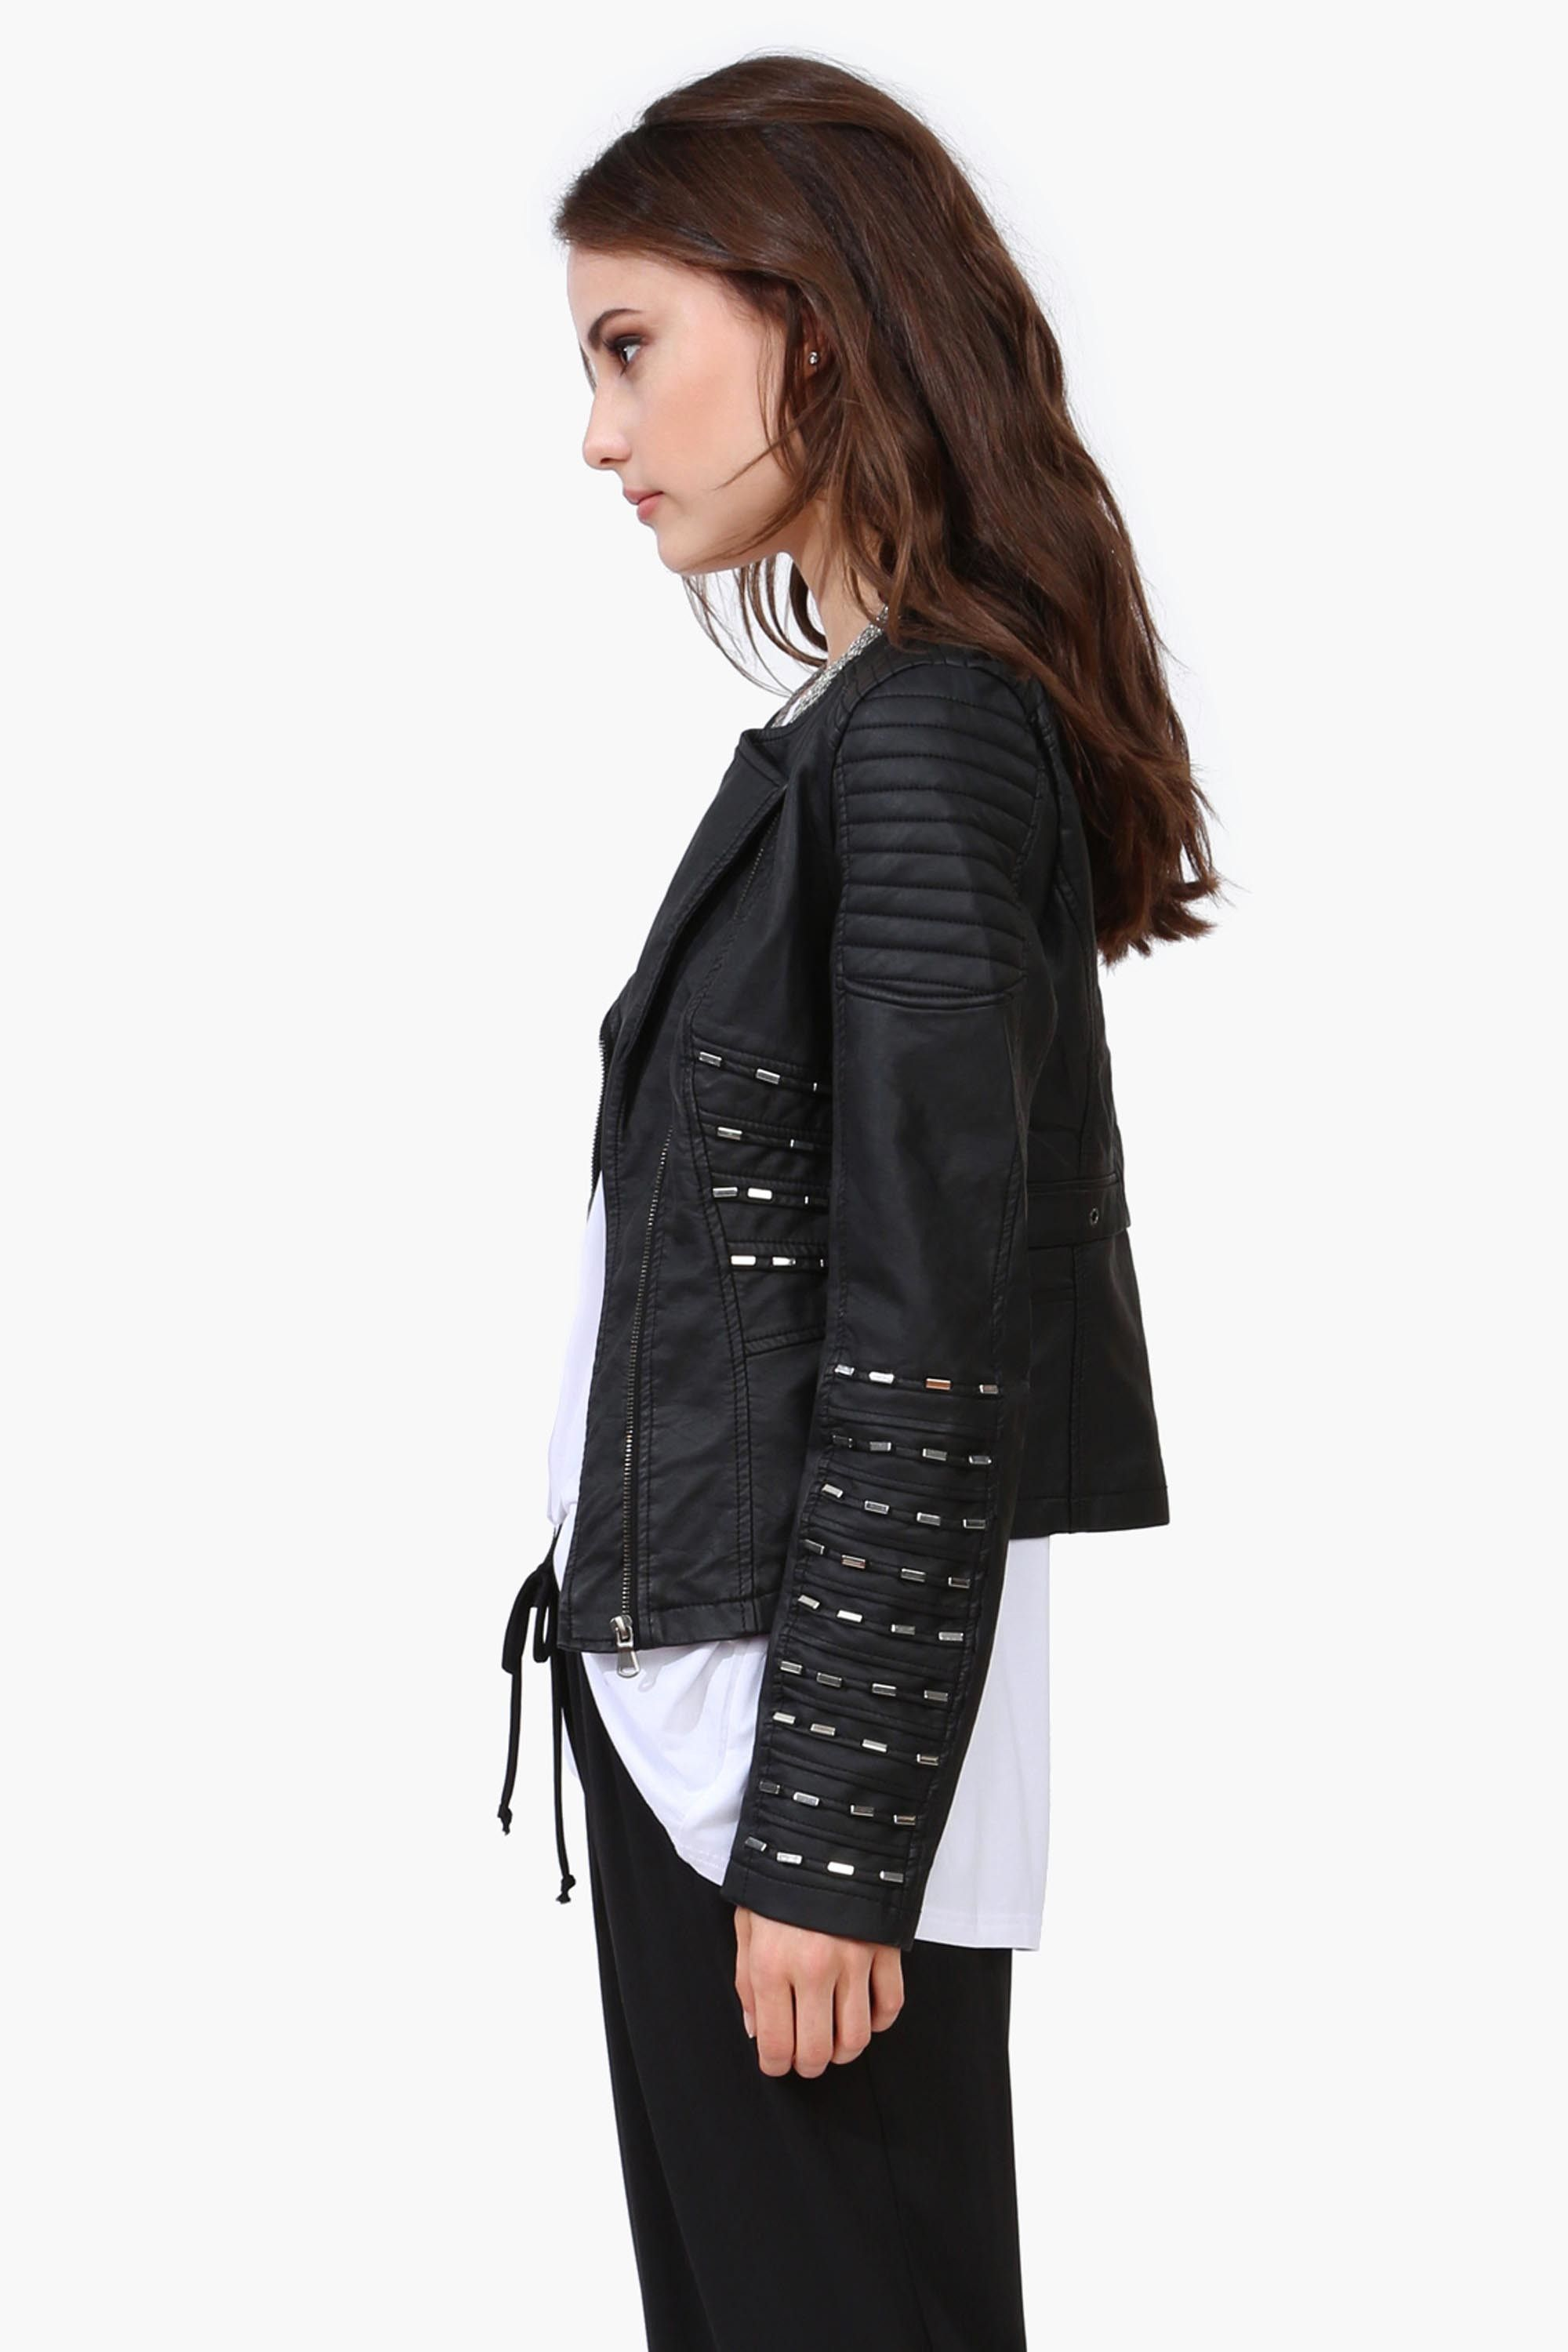 Tender Faux Leather Jacket Leather look jackets, Fashion